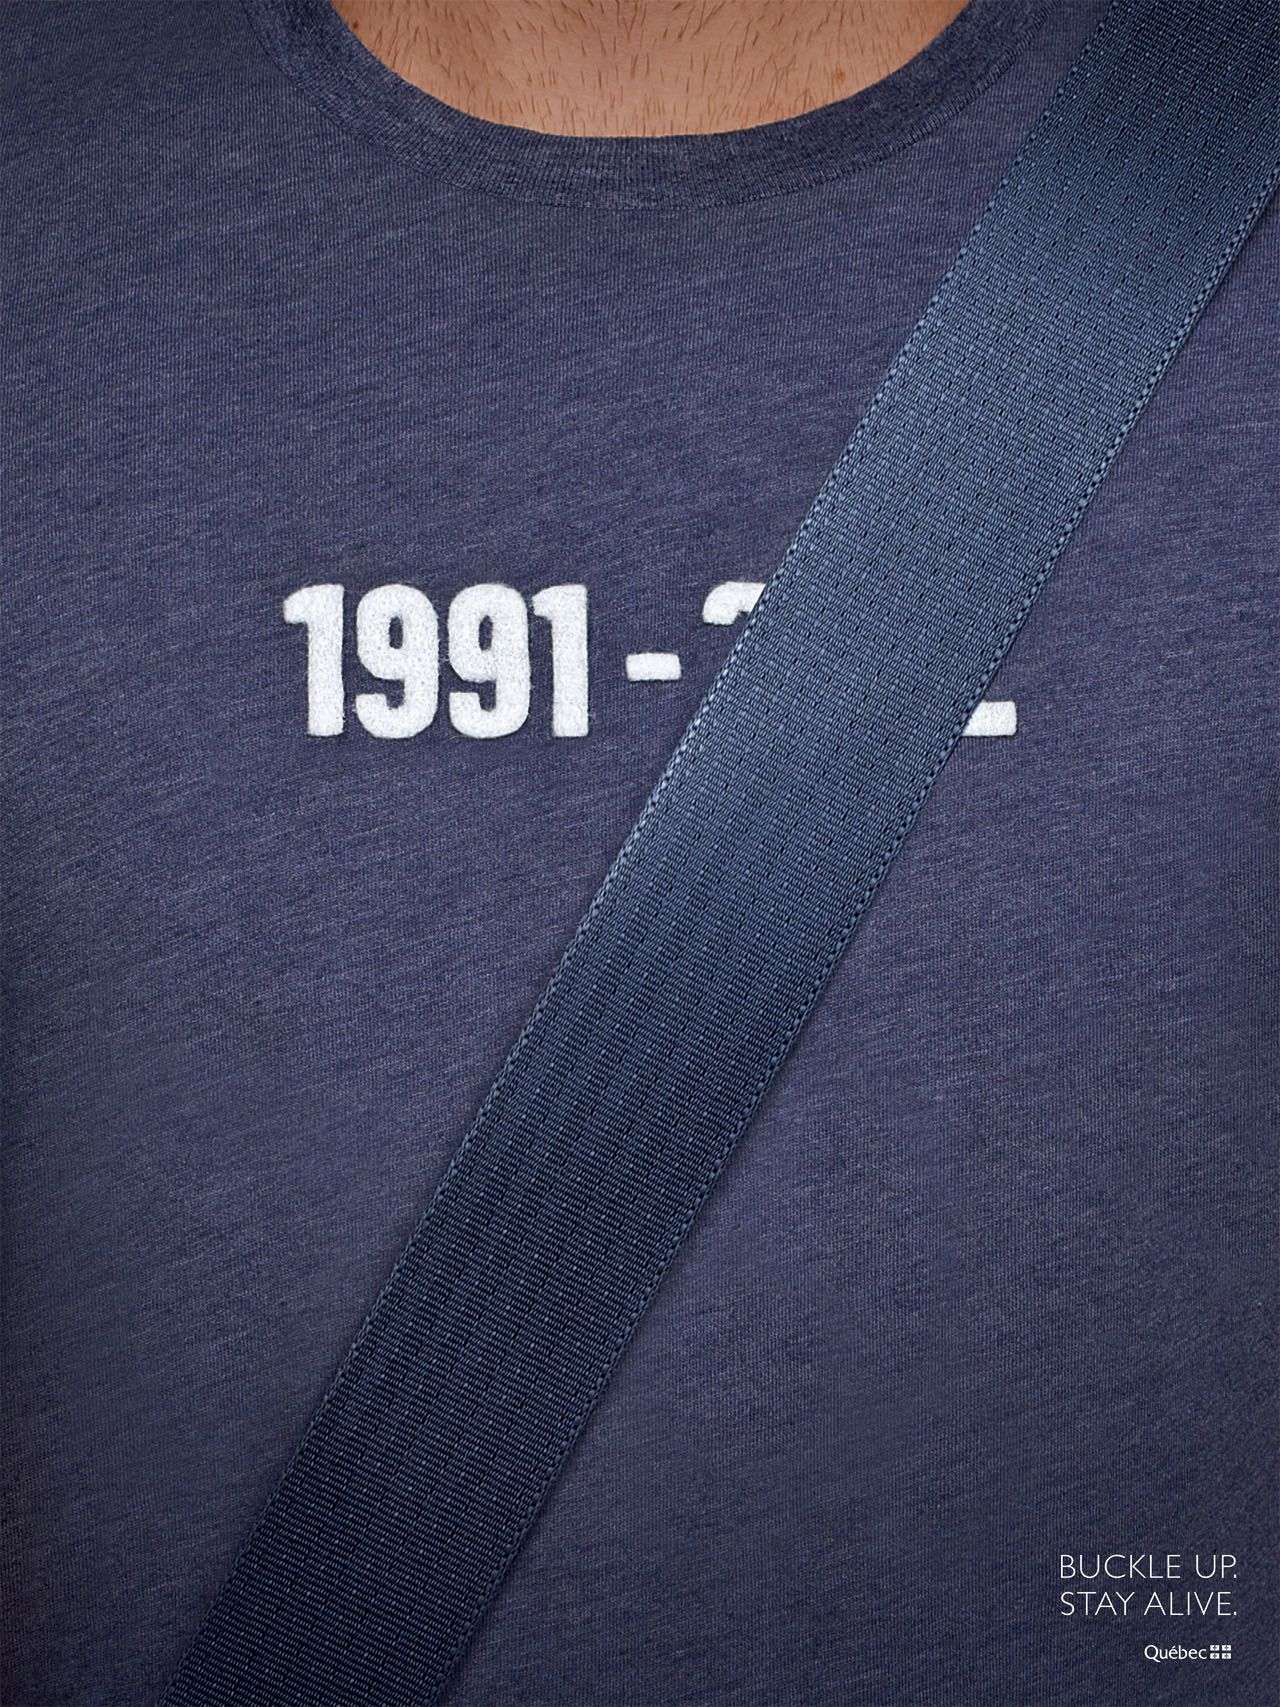 Buckle Up Stay Alive Quebec Automobile Insurance Society Ads